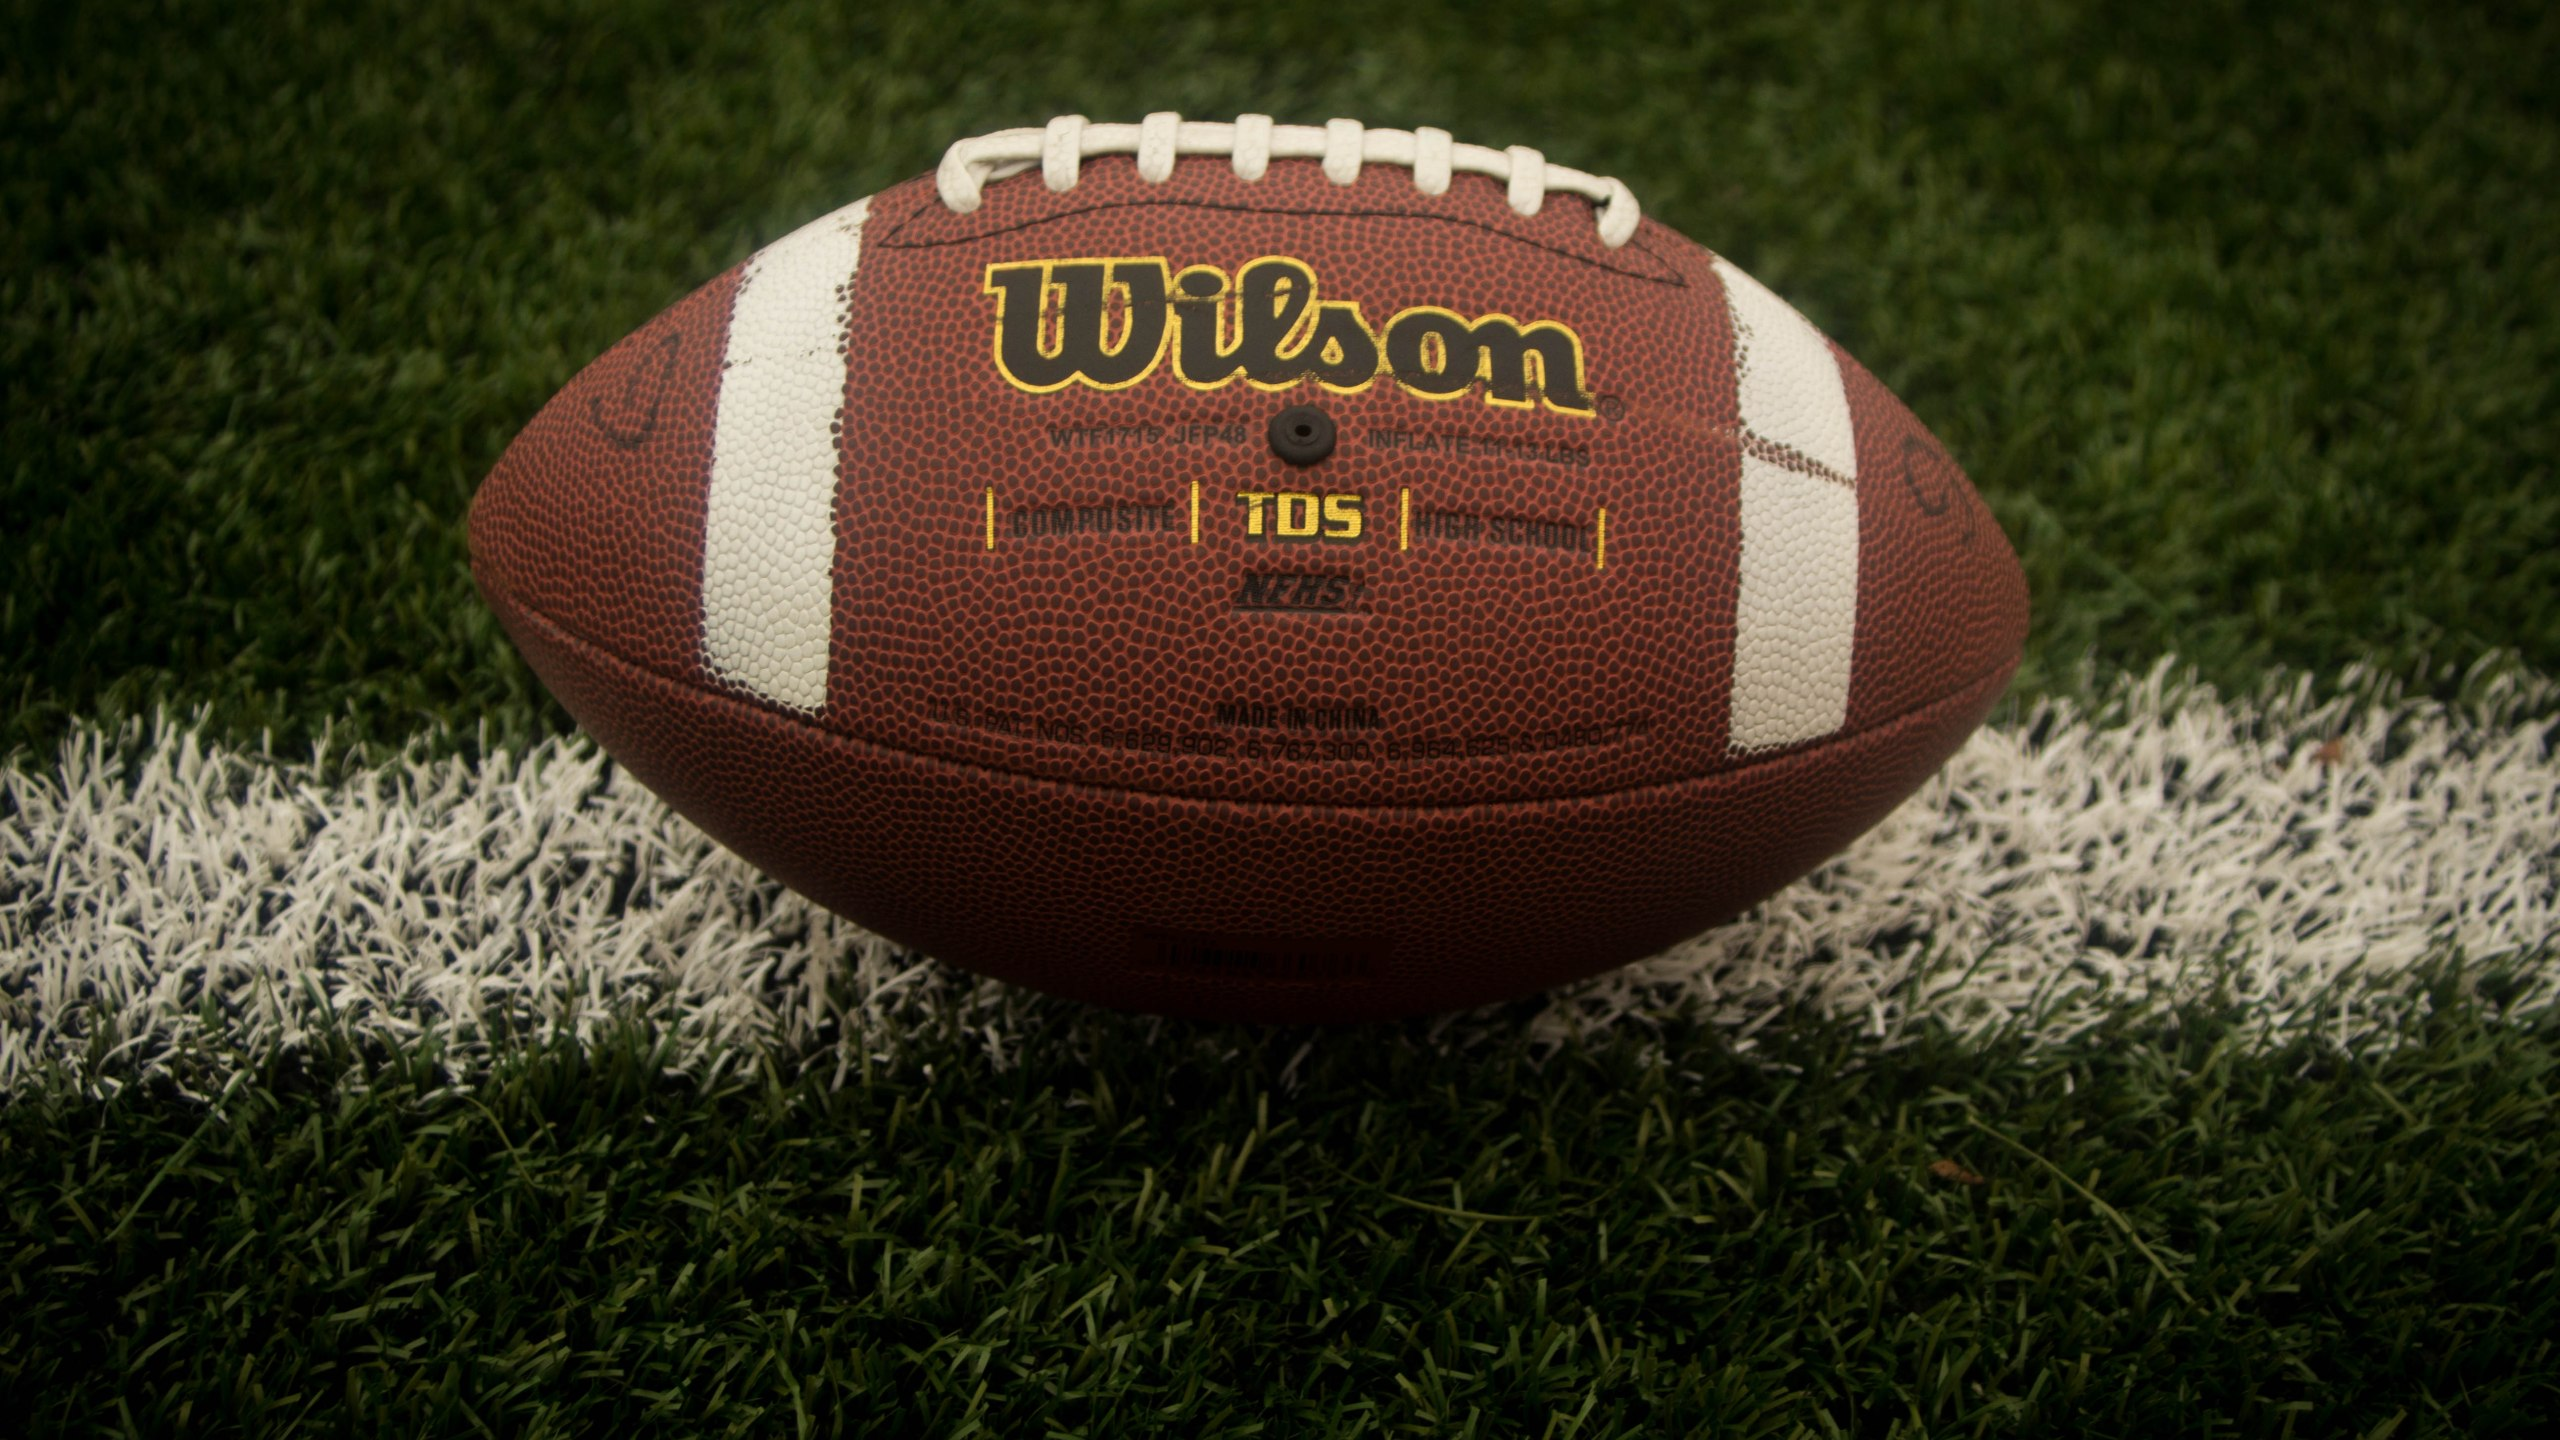 football high school score_114959